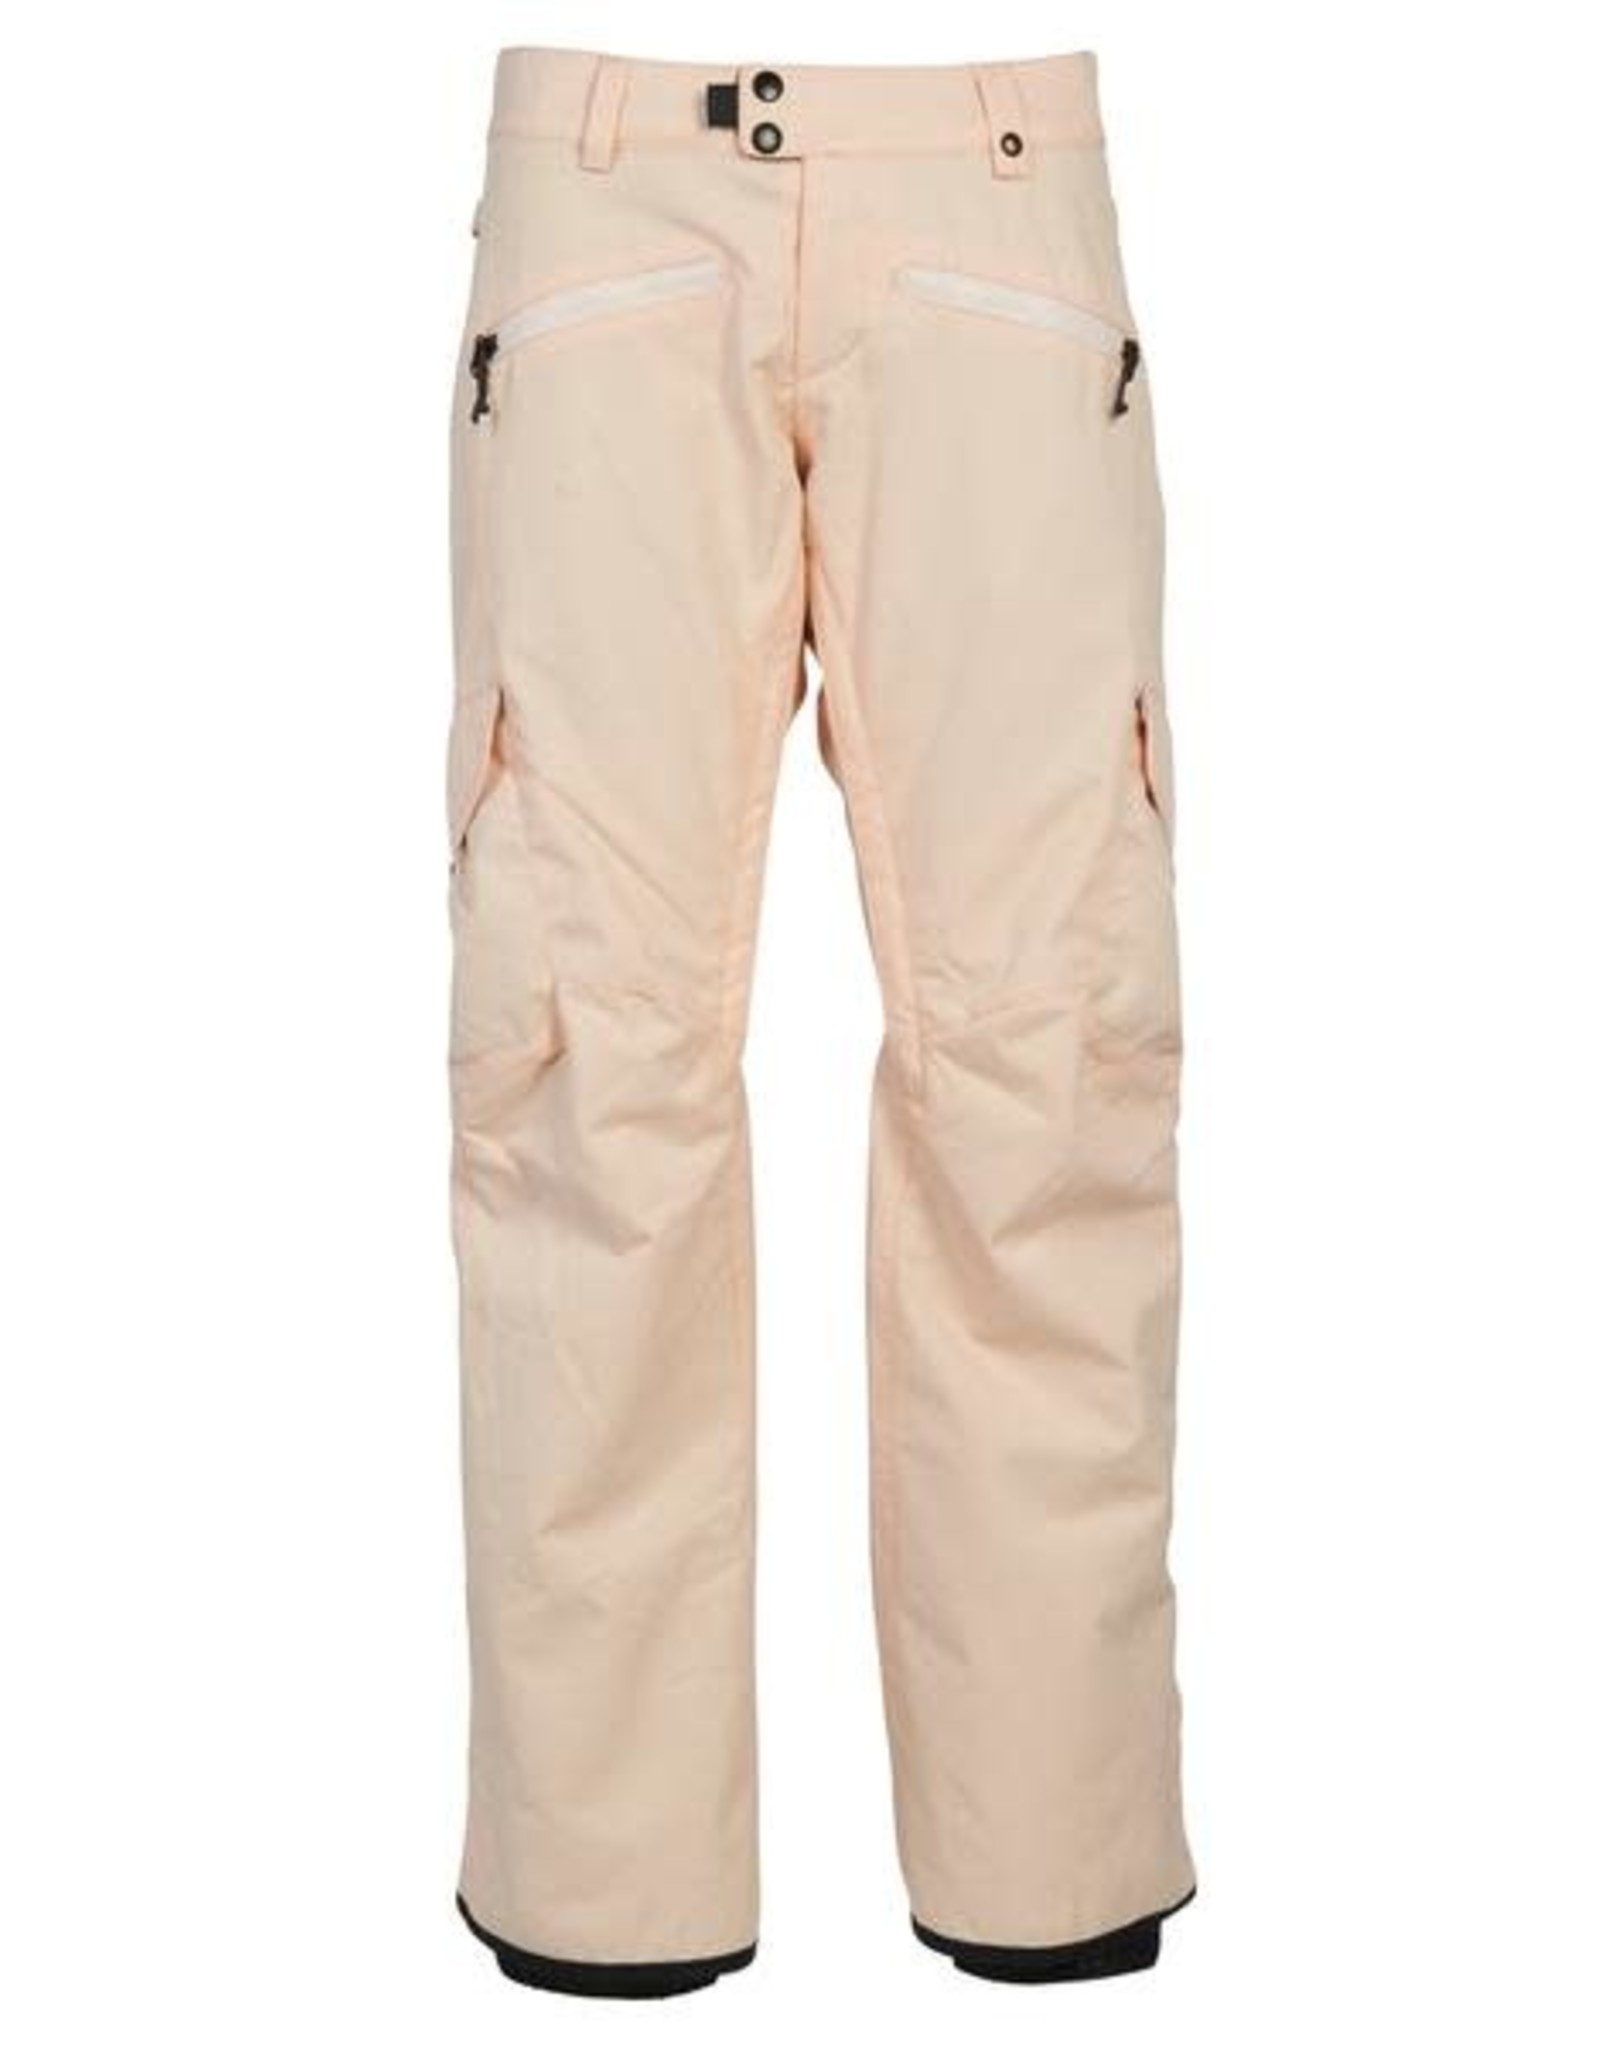 686 686 Women's Mistress Insulated Cargo Pant